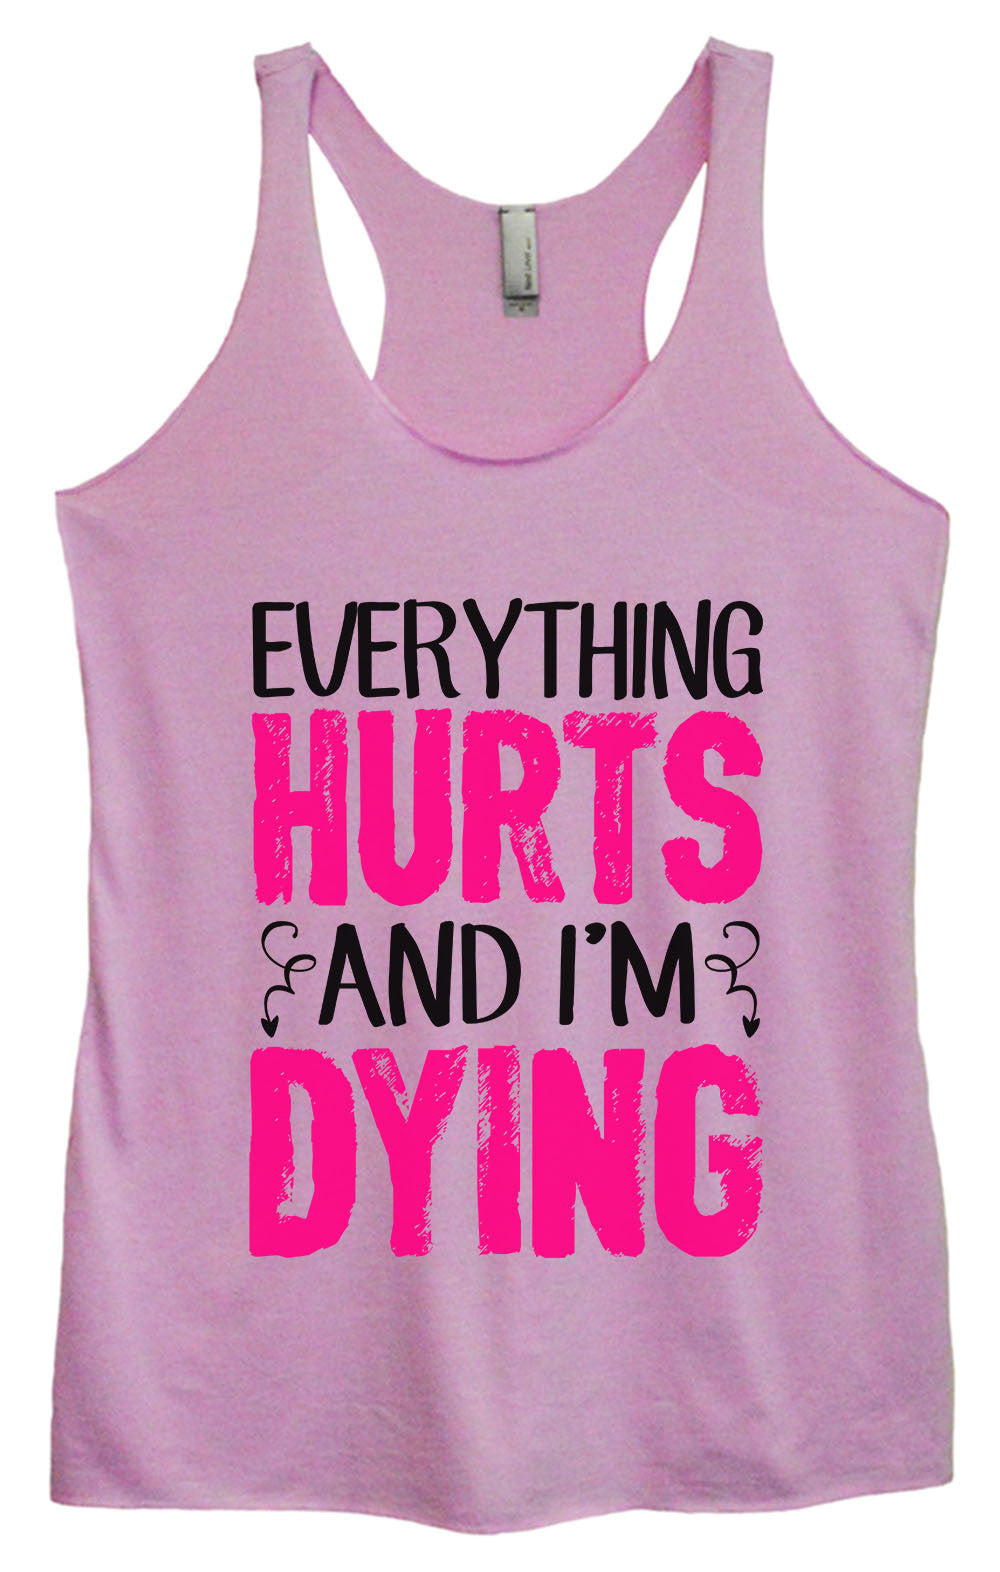 Womens Fashion Triblend Tank Top - Everything Hurts And I'm Dying - Tri-1431 - Funny Shirts Tank Tops Burnouts and Triblends  - 4